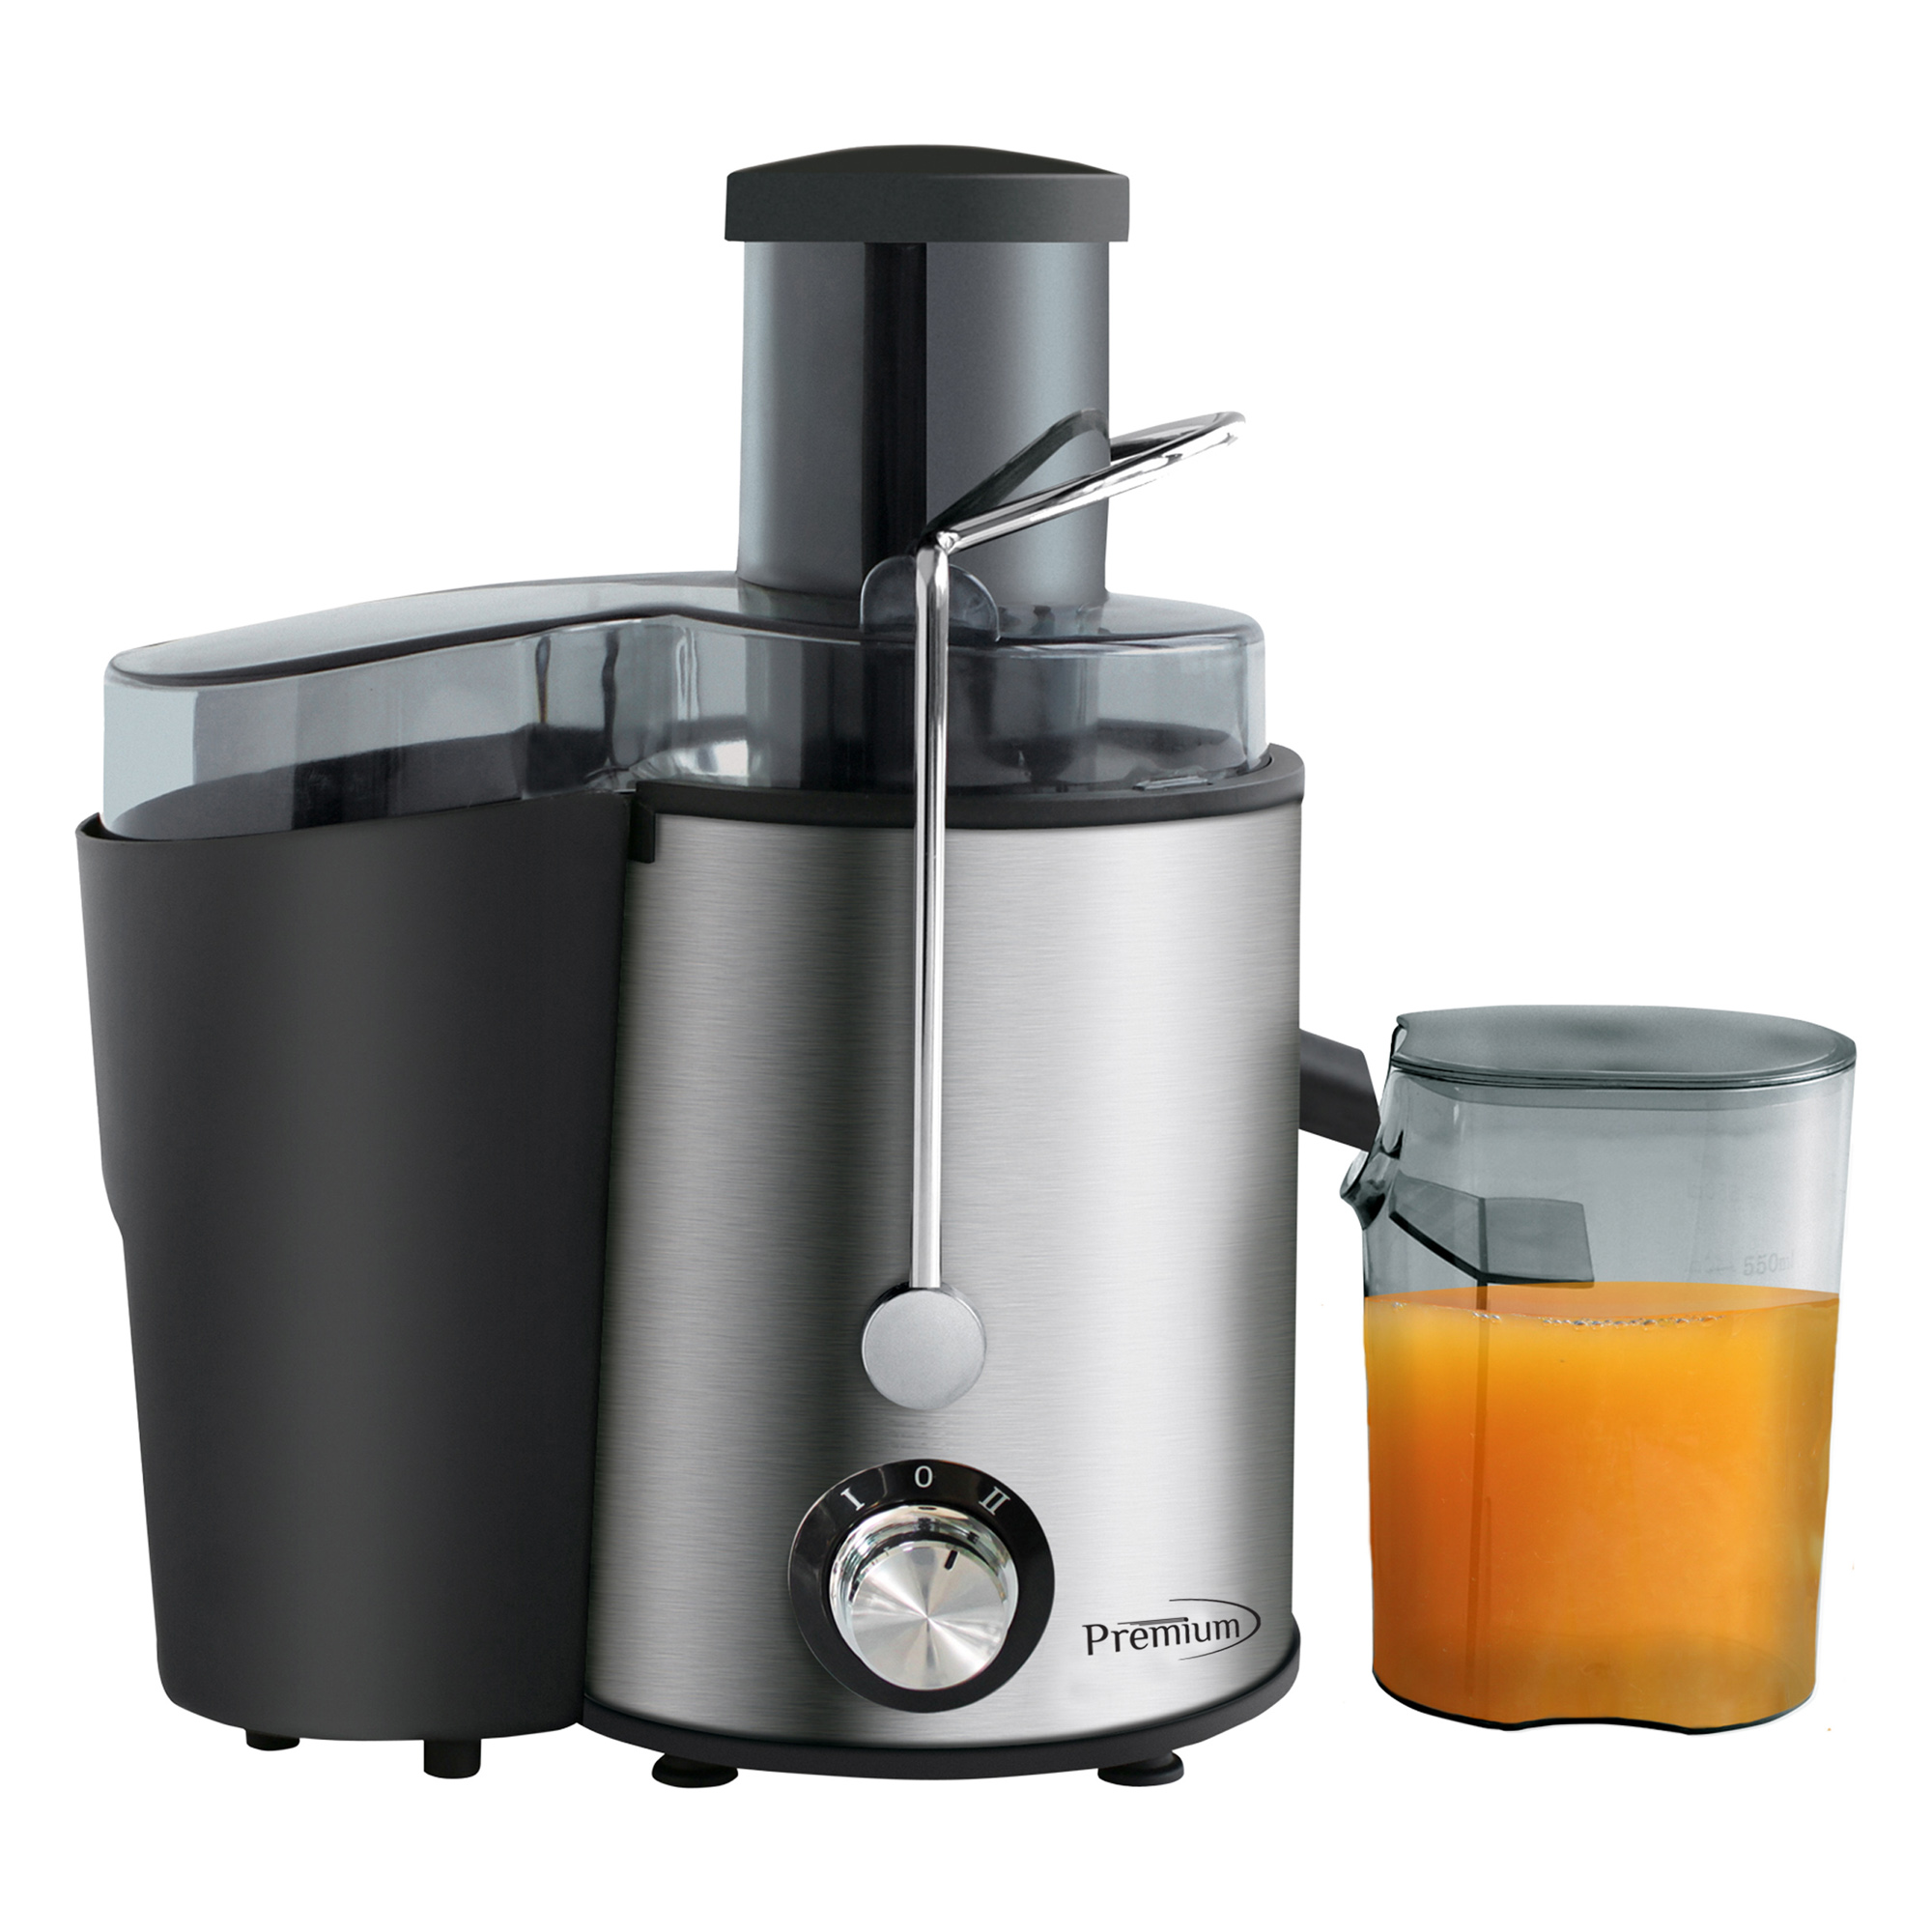 Premium Appliances Stainless Steel Juice Extractor